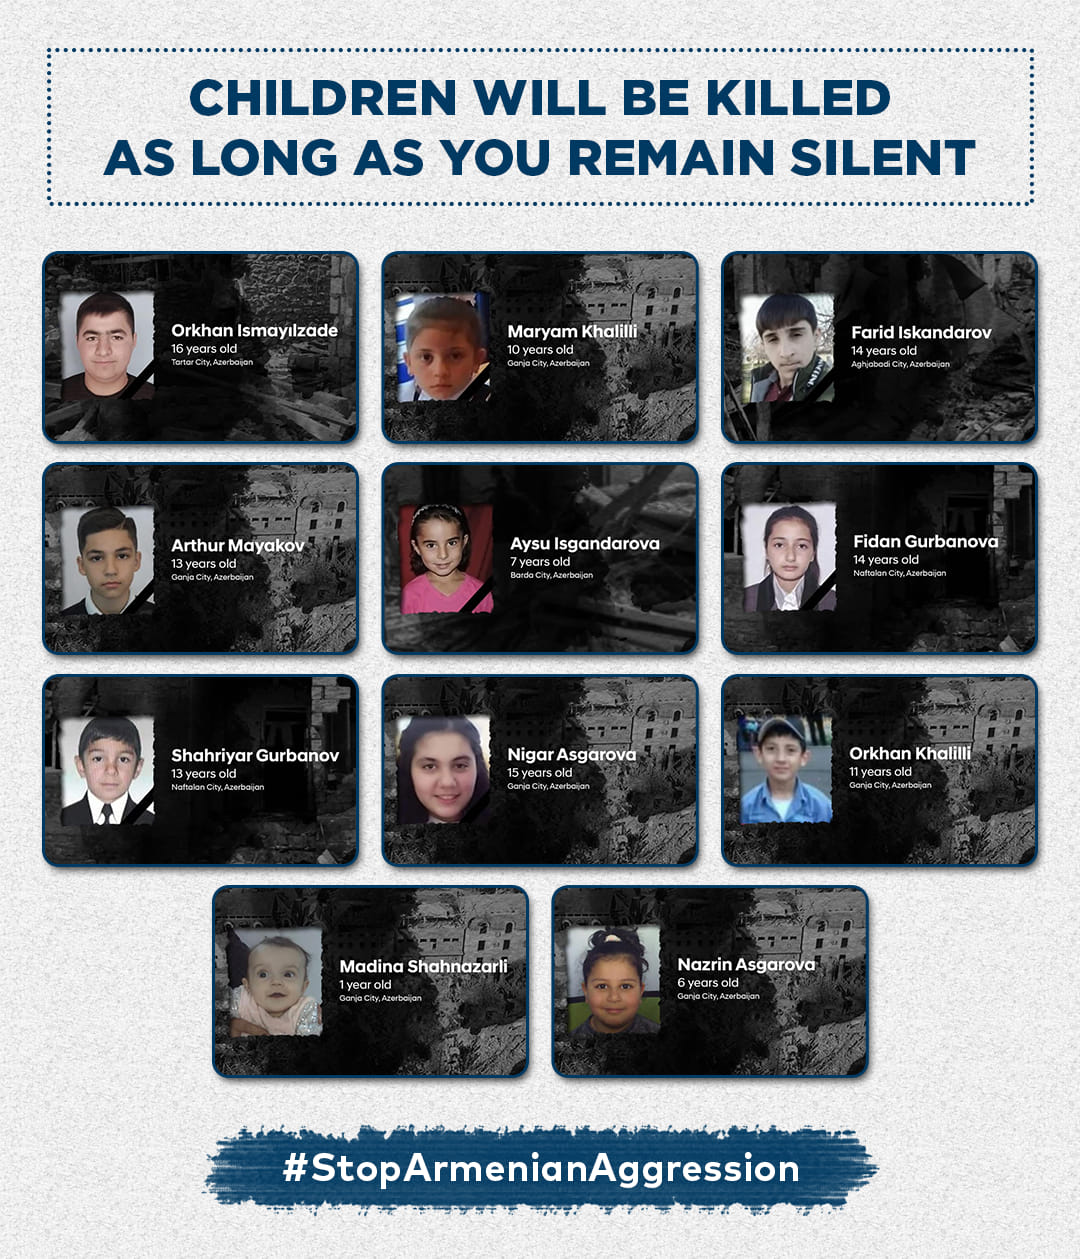 Innocent children will be killed as long as you remain silent